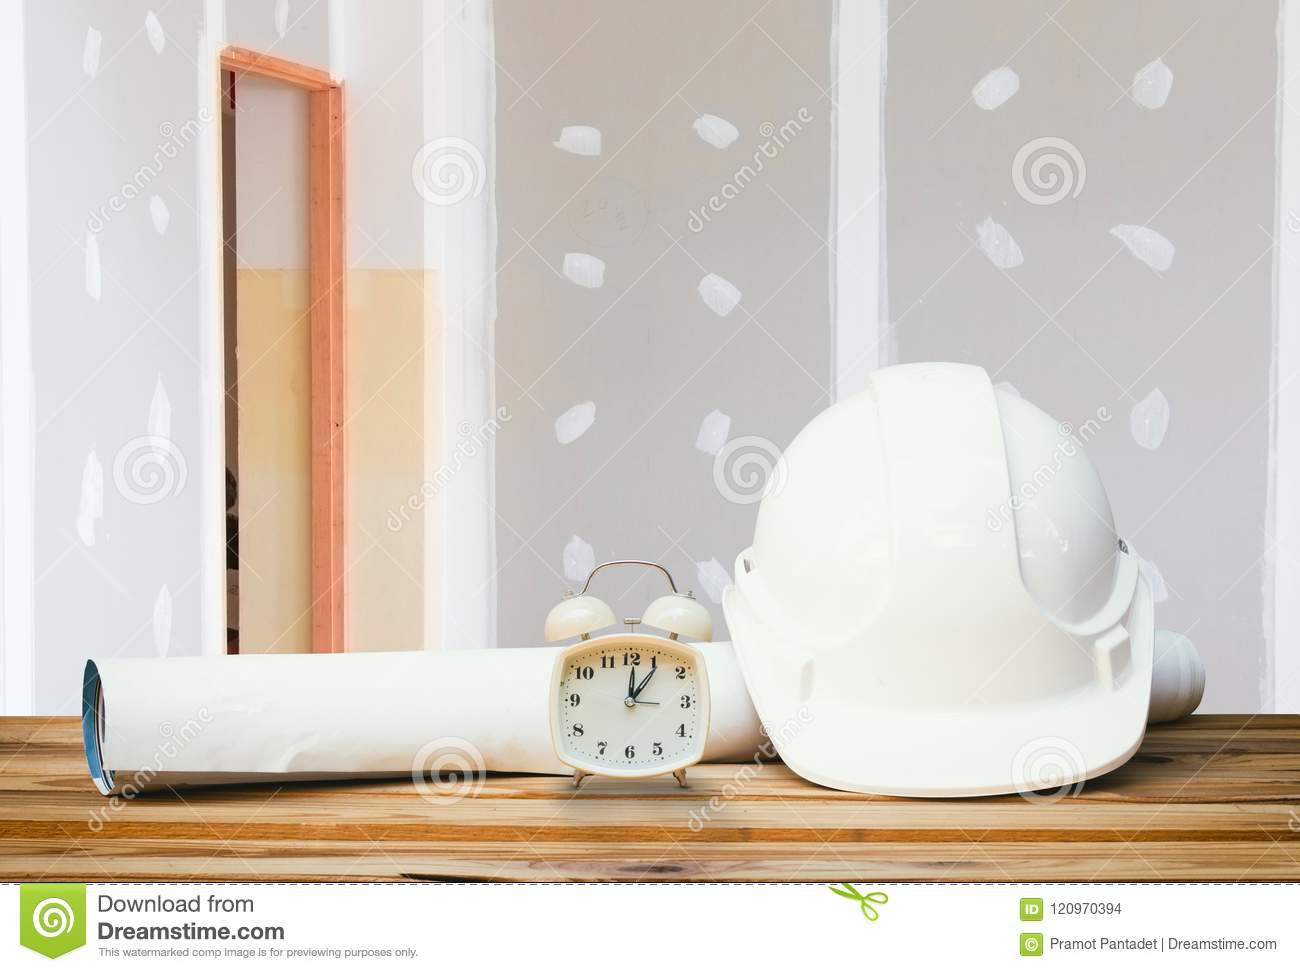 White safety helmet plastic, paper roll plan blueprint alarm clock time a rest at noon on wood floor table and gypsum board wall